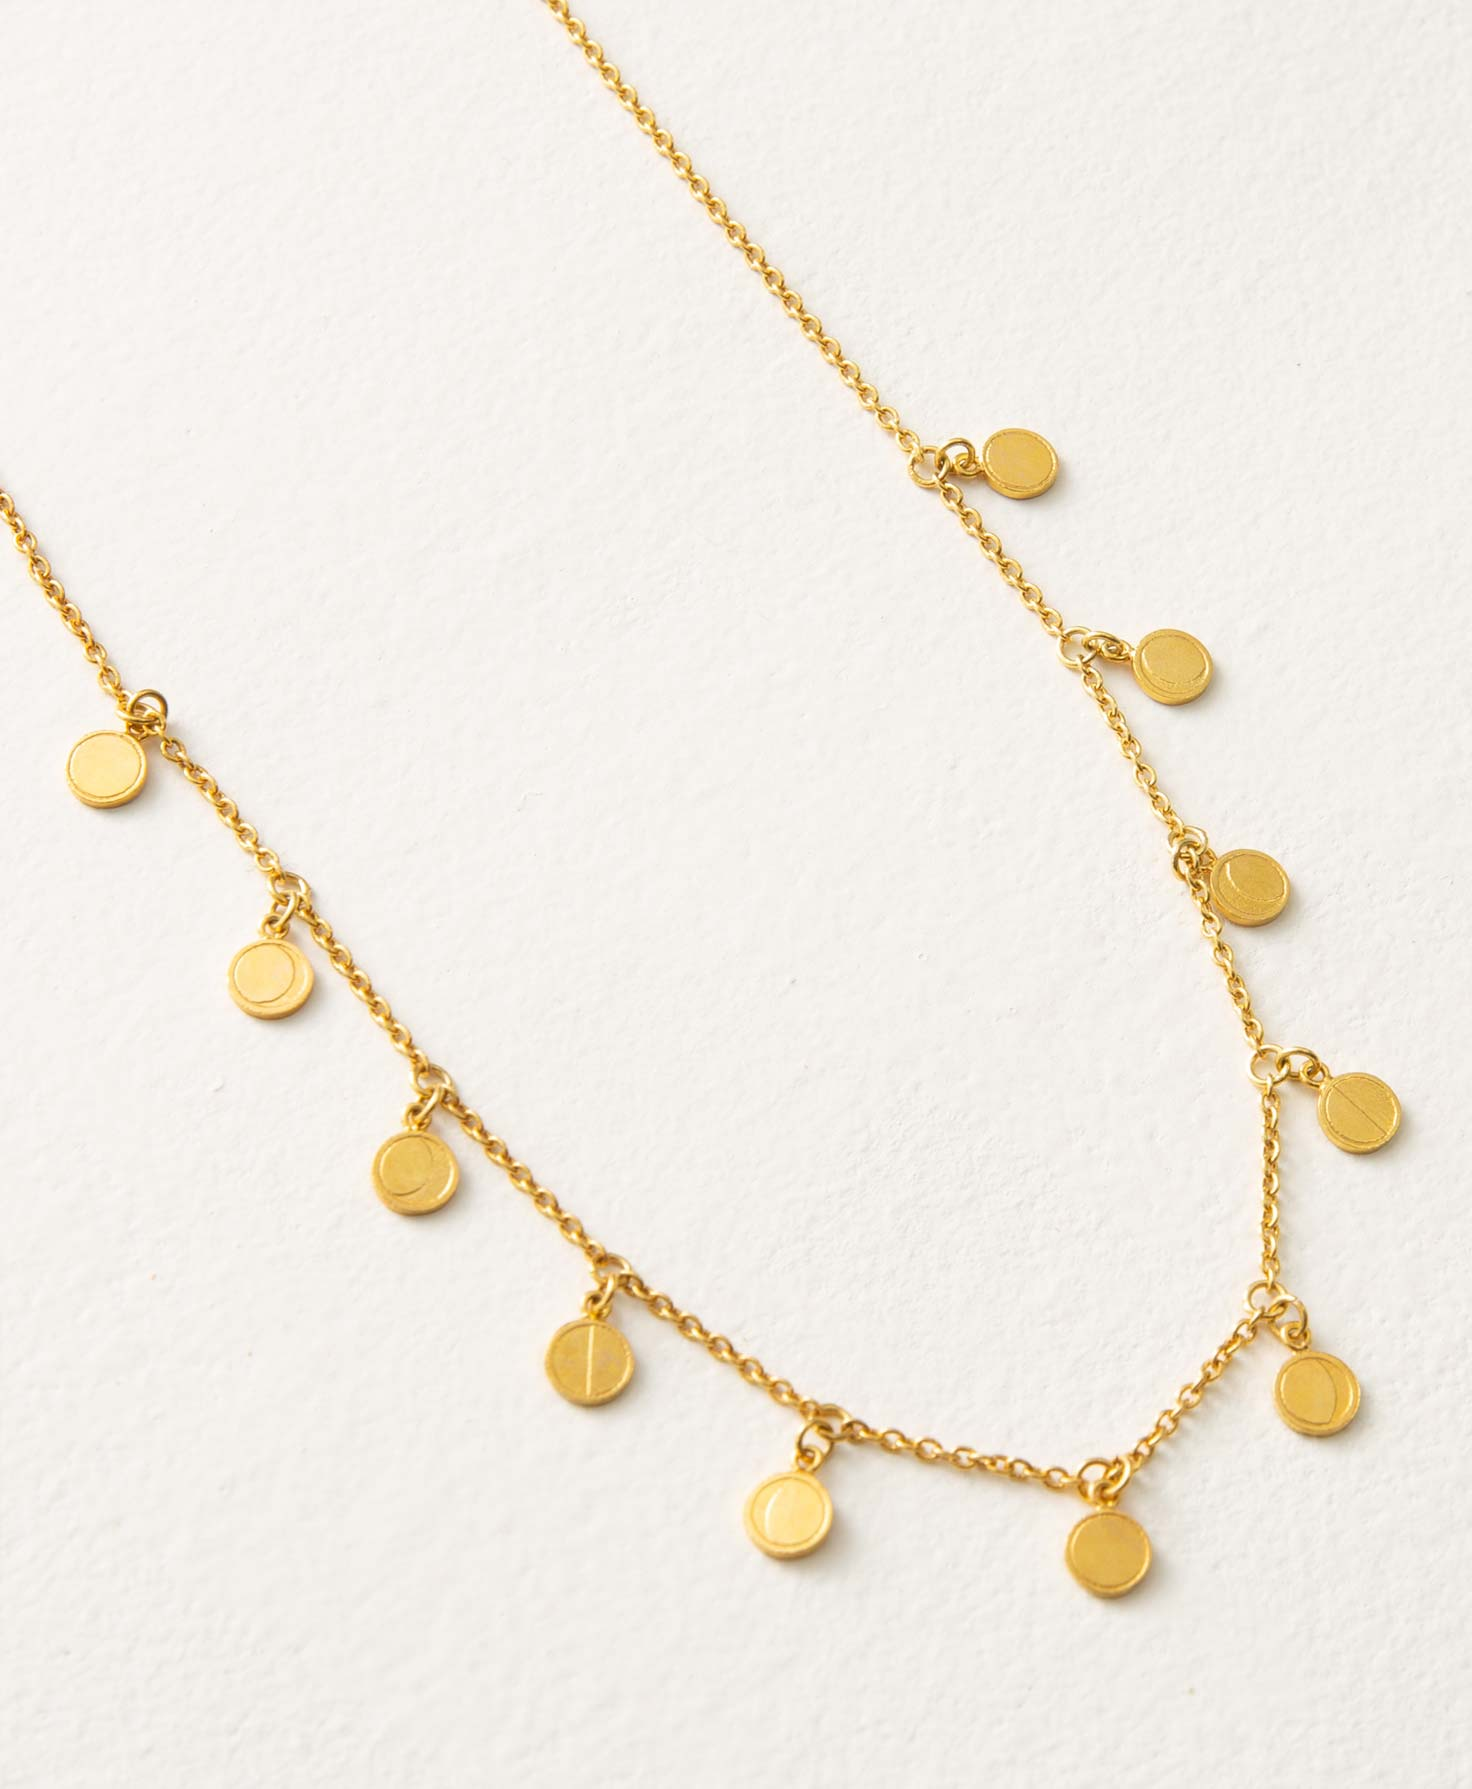 The Lunar Necklace lays flat on a white background. It consists of a short gold chain accented with 11 small, shiny golden discs. The discs are attached to the chain via jump rings so they remain in a fixed position, and are spaced roughly an inch apart. Each disc features a minimalistic etched design of a different phase of the moon.